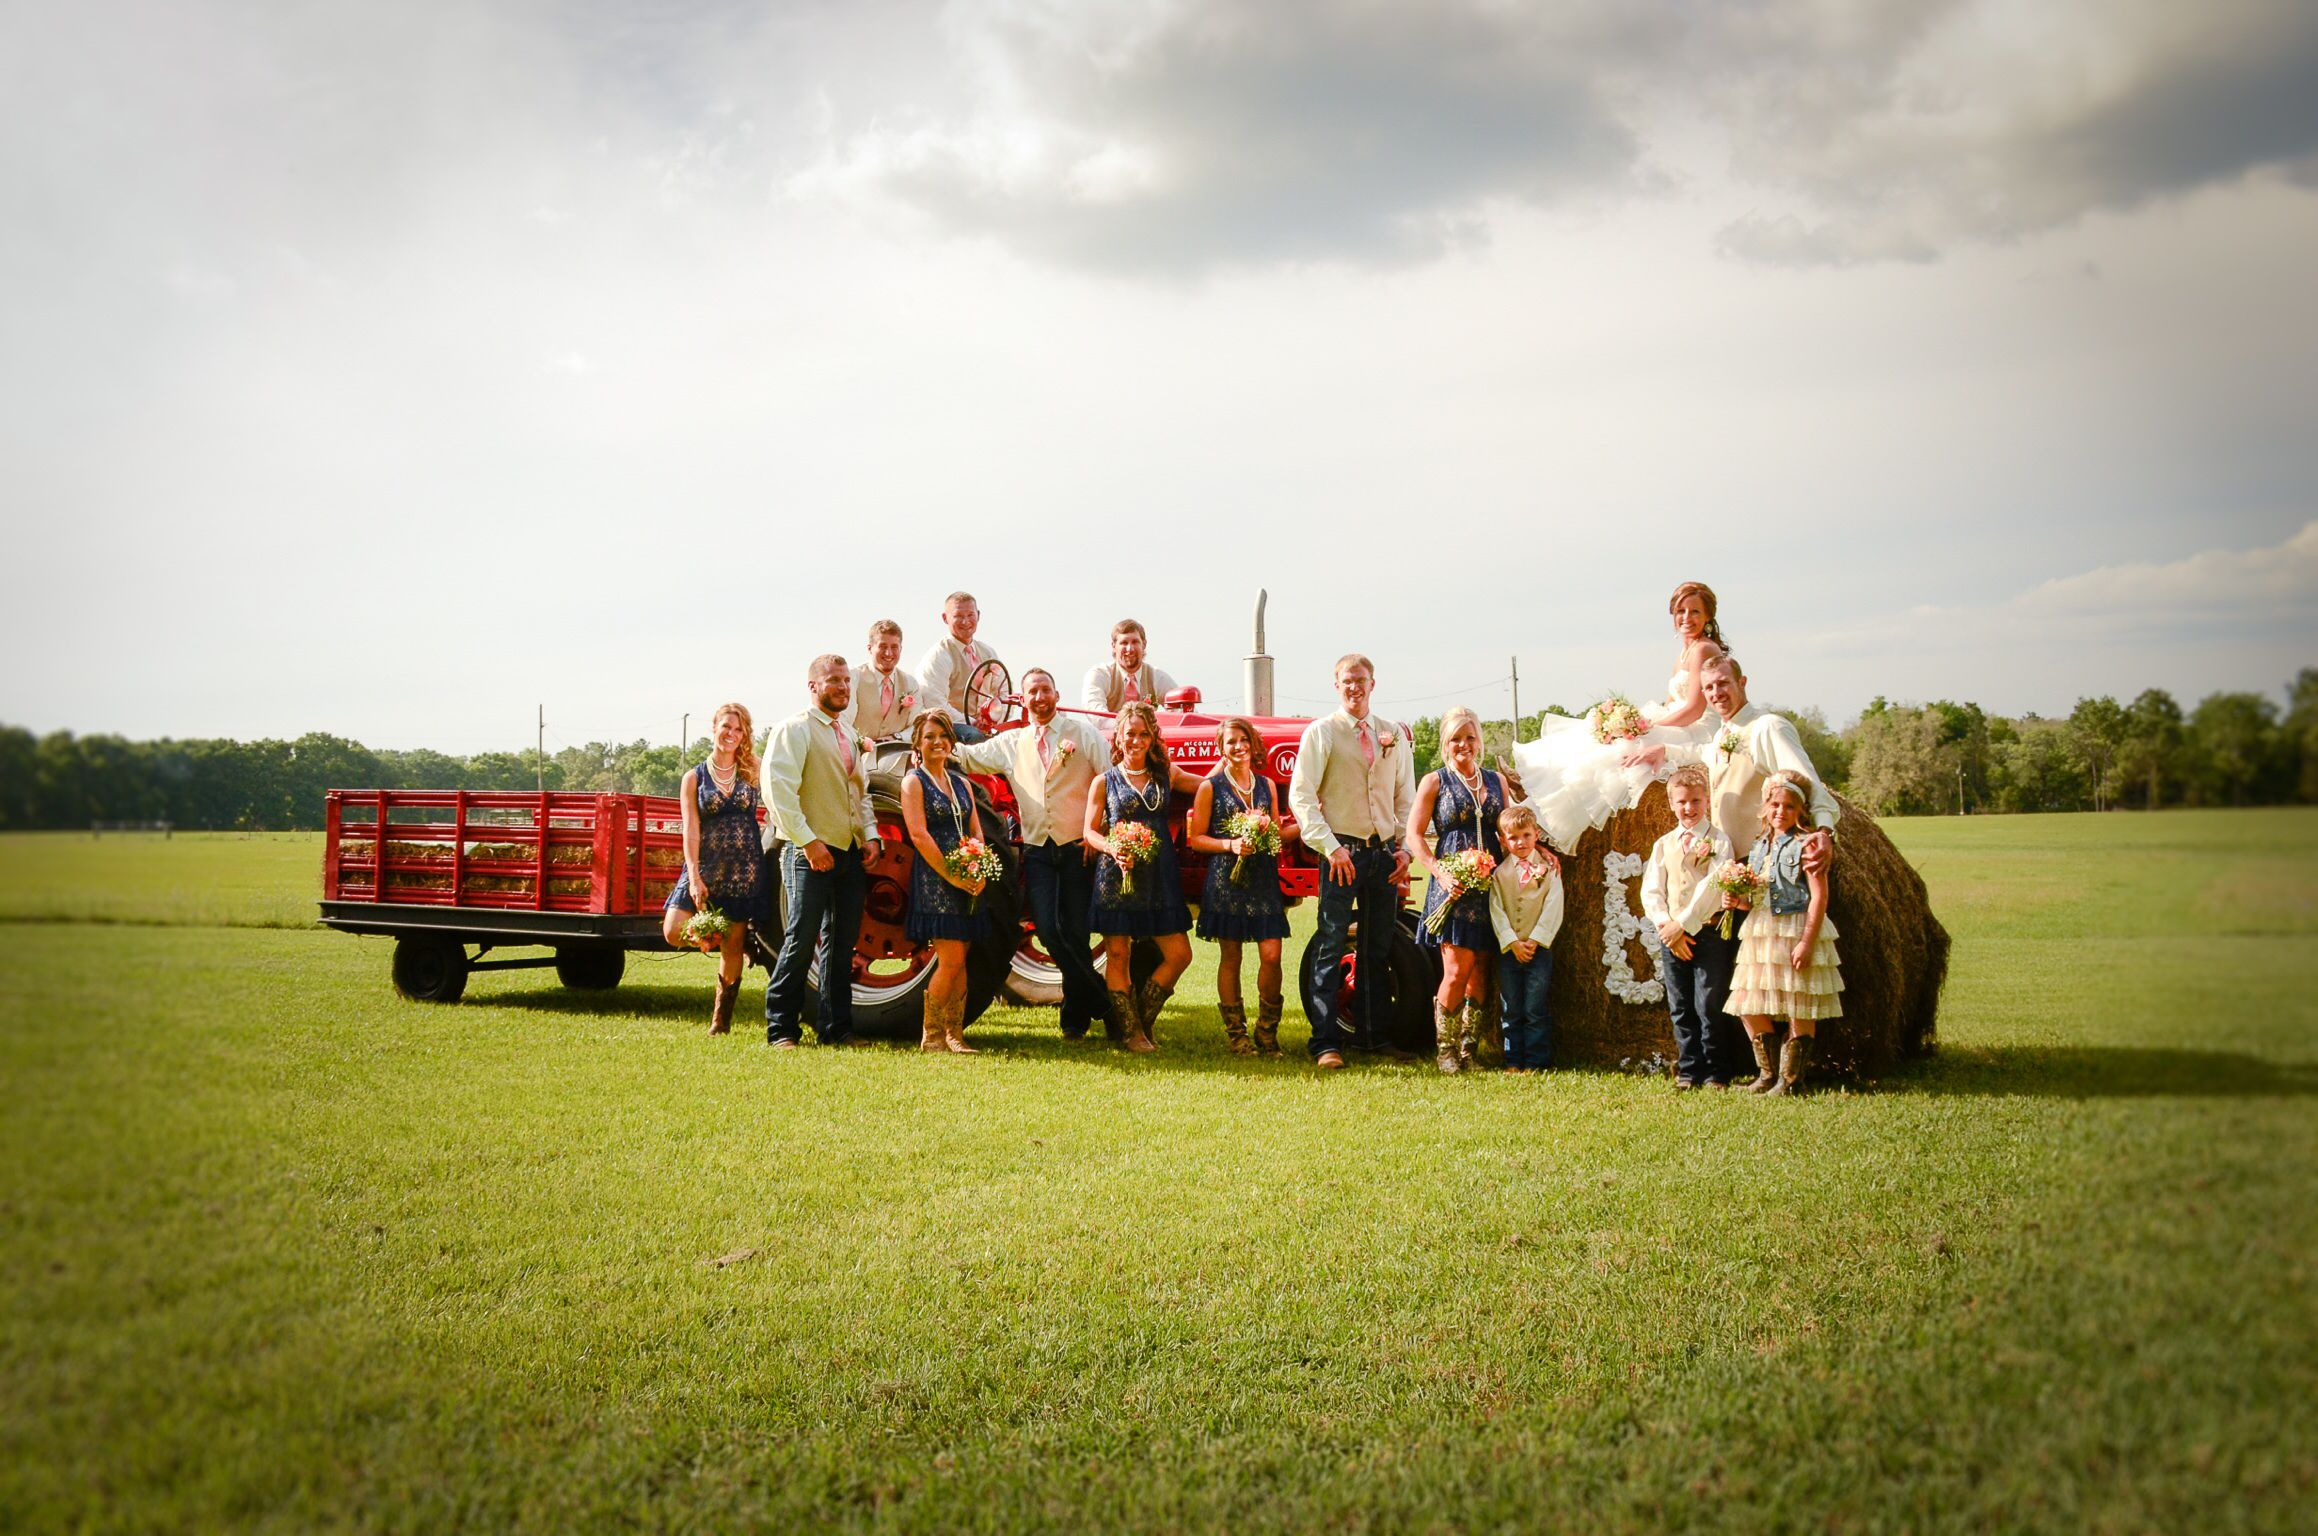 Country wedding, tractor, southern, hay bales, boots, lace